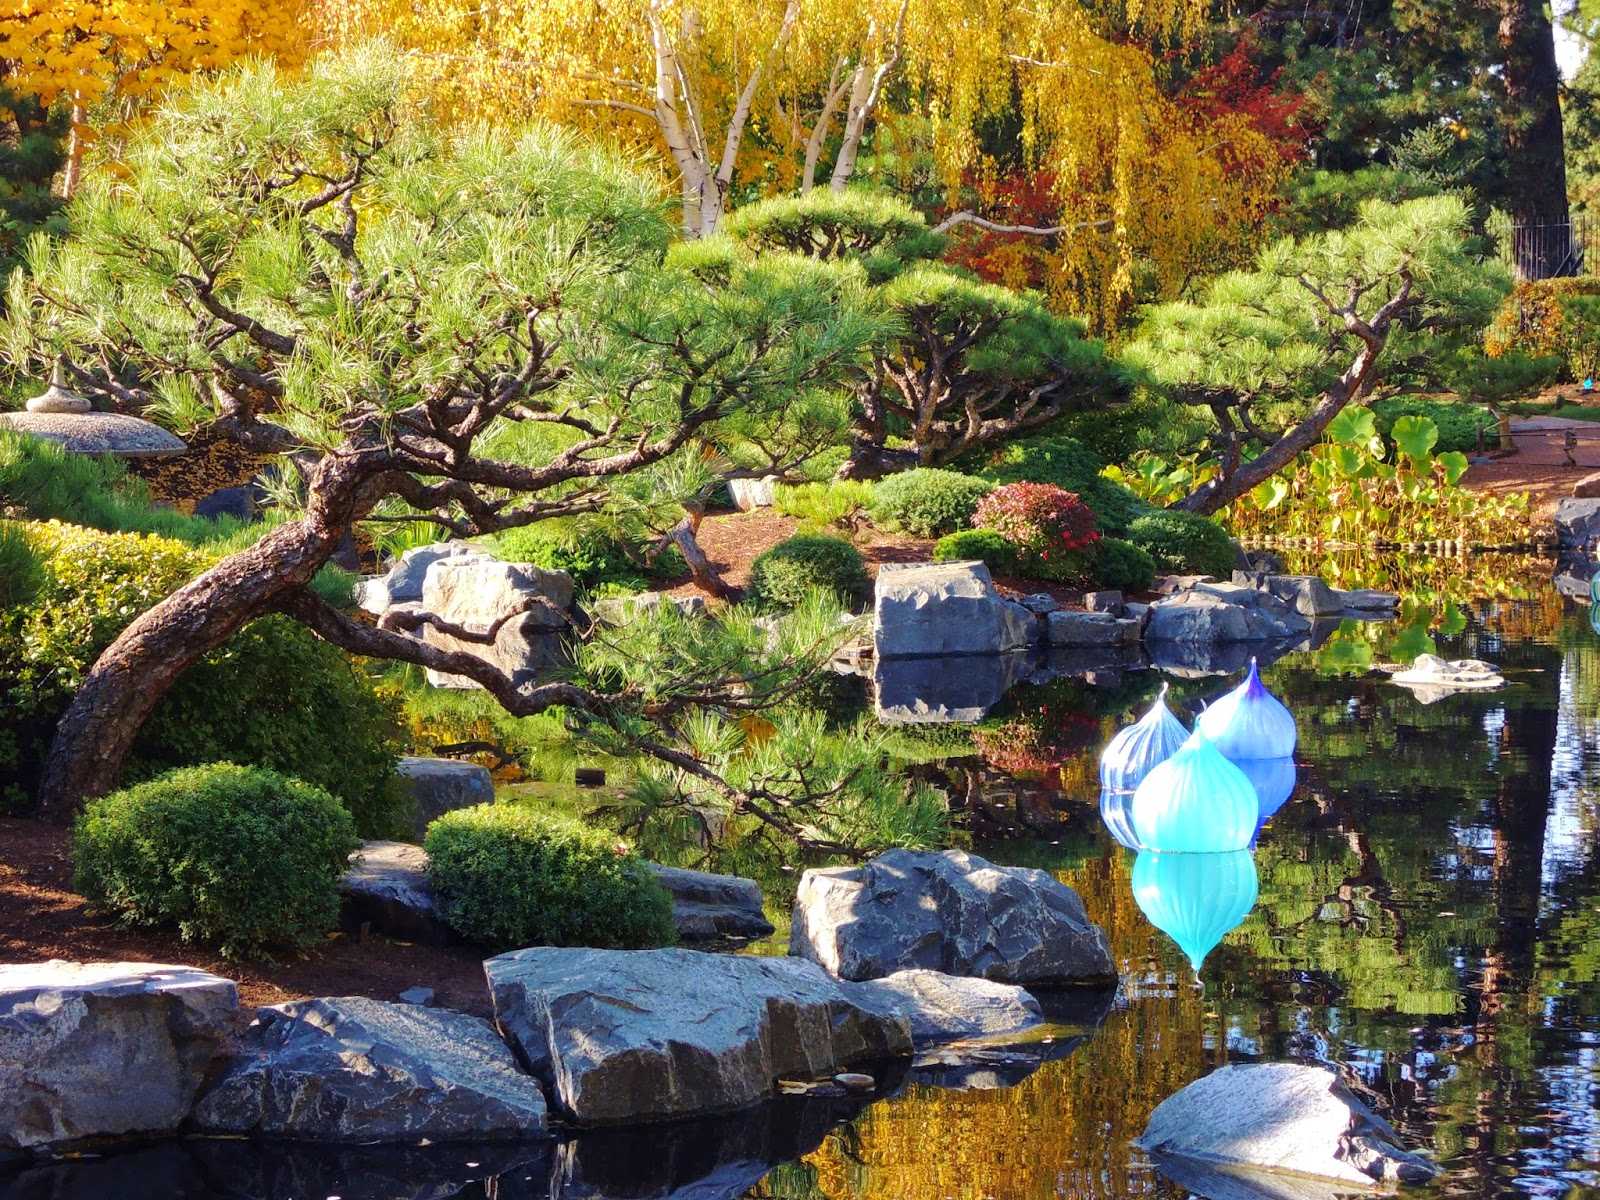 Japanese garden, glass art, Dale Chihuly